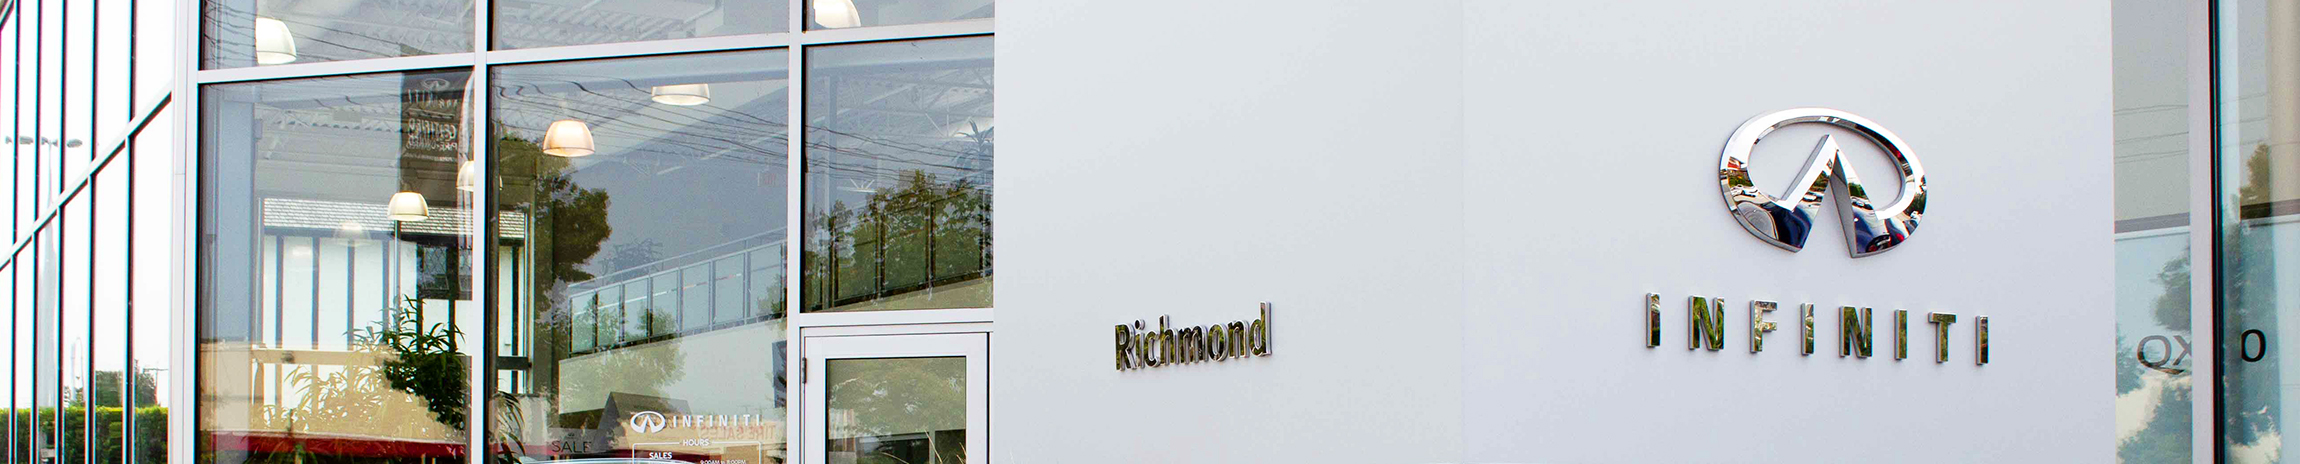 Infiniti of Richmond, Metro Vancouver, Luxury car dealership